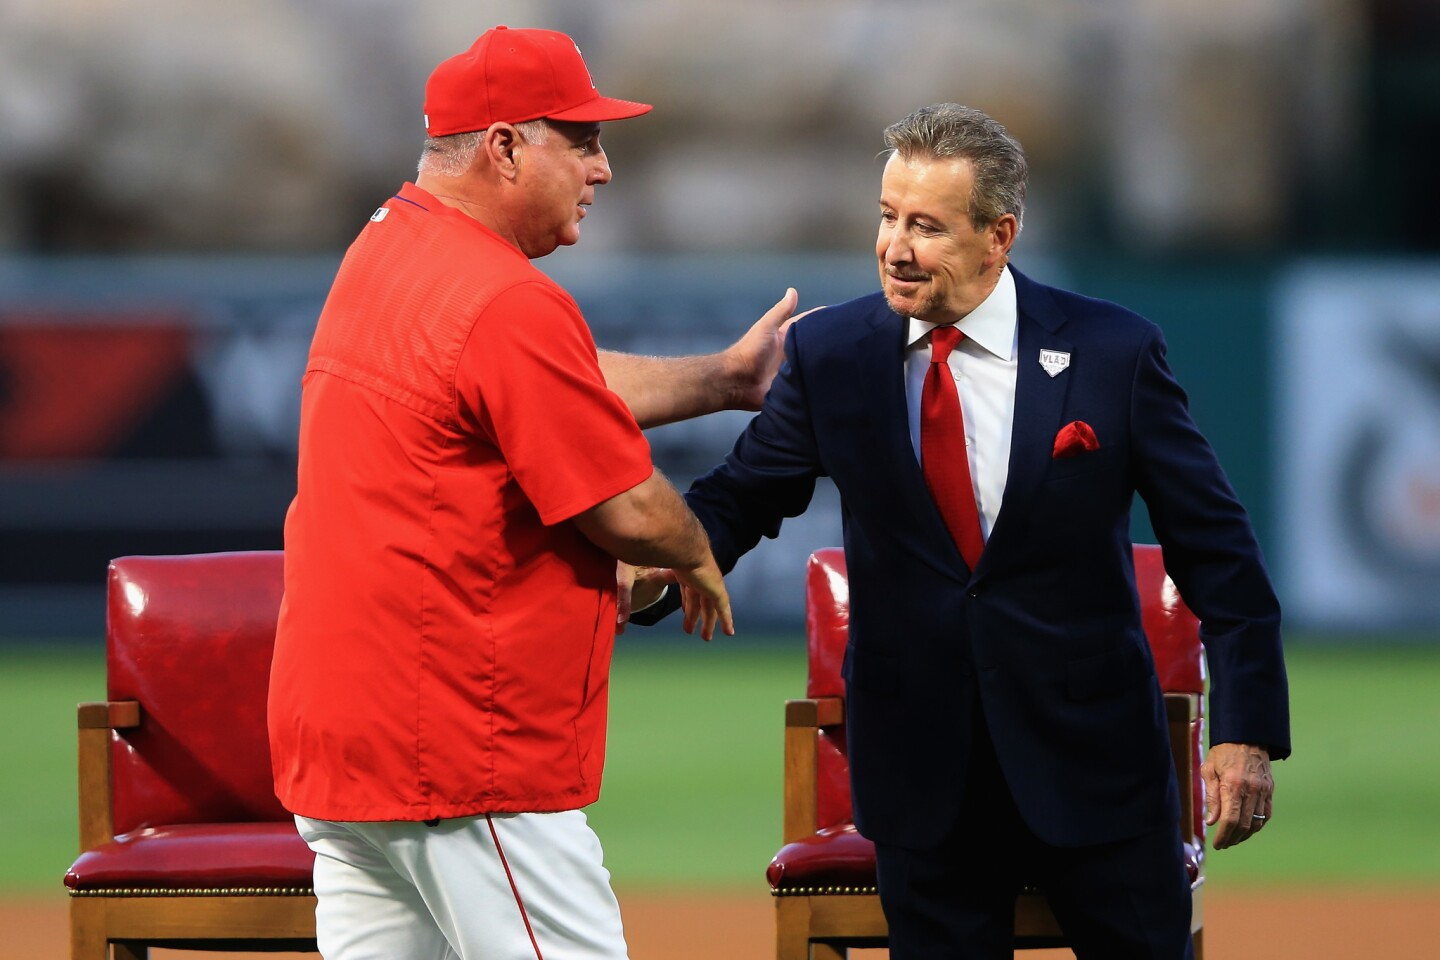 ANAHEIM, CA - AUGUST 10: Manager Mike Scioscia shakes hands with Owner of the Los Angeles Angels of Anaheim Arte Moreno during a ceremony celebrating the induction of Vladimir Guerrero into the Baseball Hall of Fame prior to a game between the Los Angeles Angels of Anaheim and the Oakland Athletics at Angel Stadium on August 10, 2018 in Anaheim, California. (Photo by Sean M. Haffey/Getty Images) ** OUTS - ELSENT, FPG, CM - OUTS * NM, PH, VA if sourced by CT, LA or MoD **